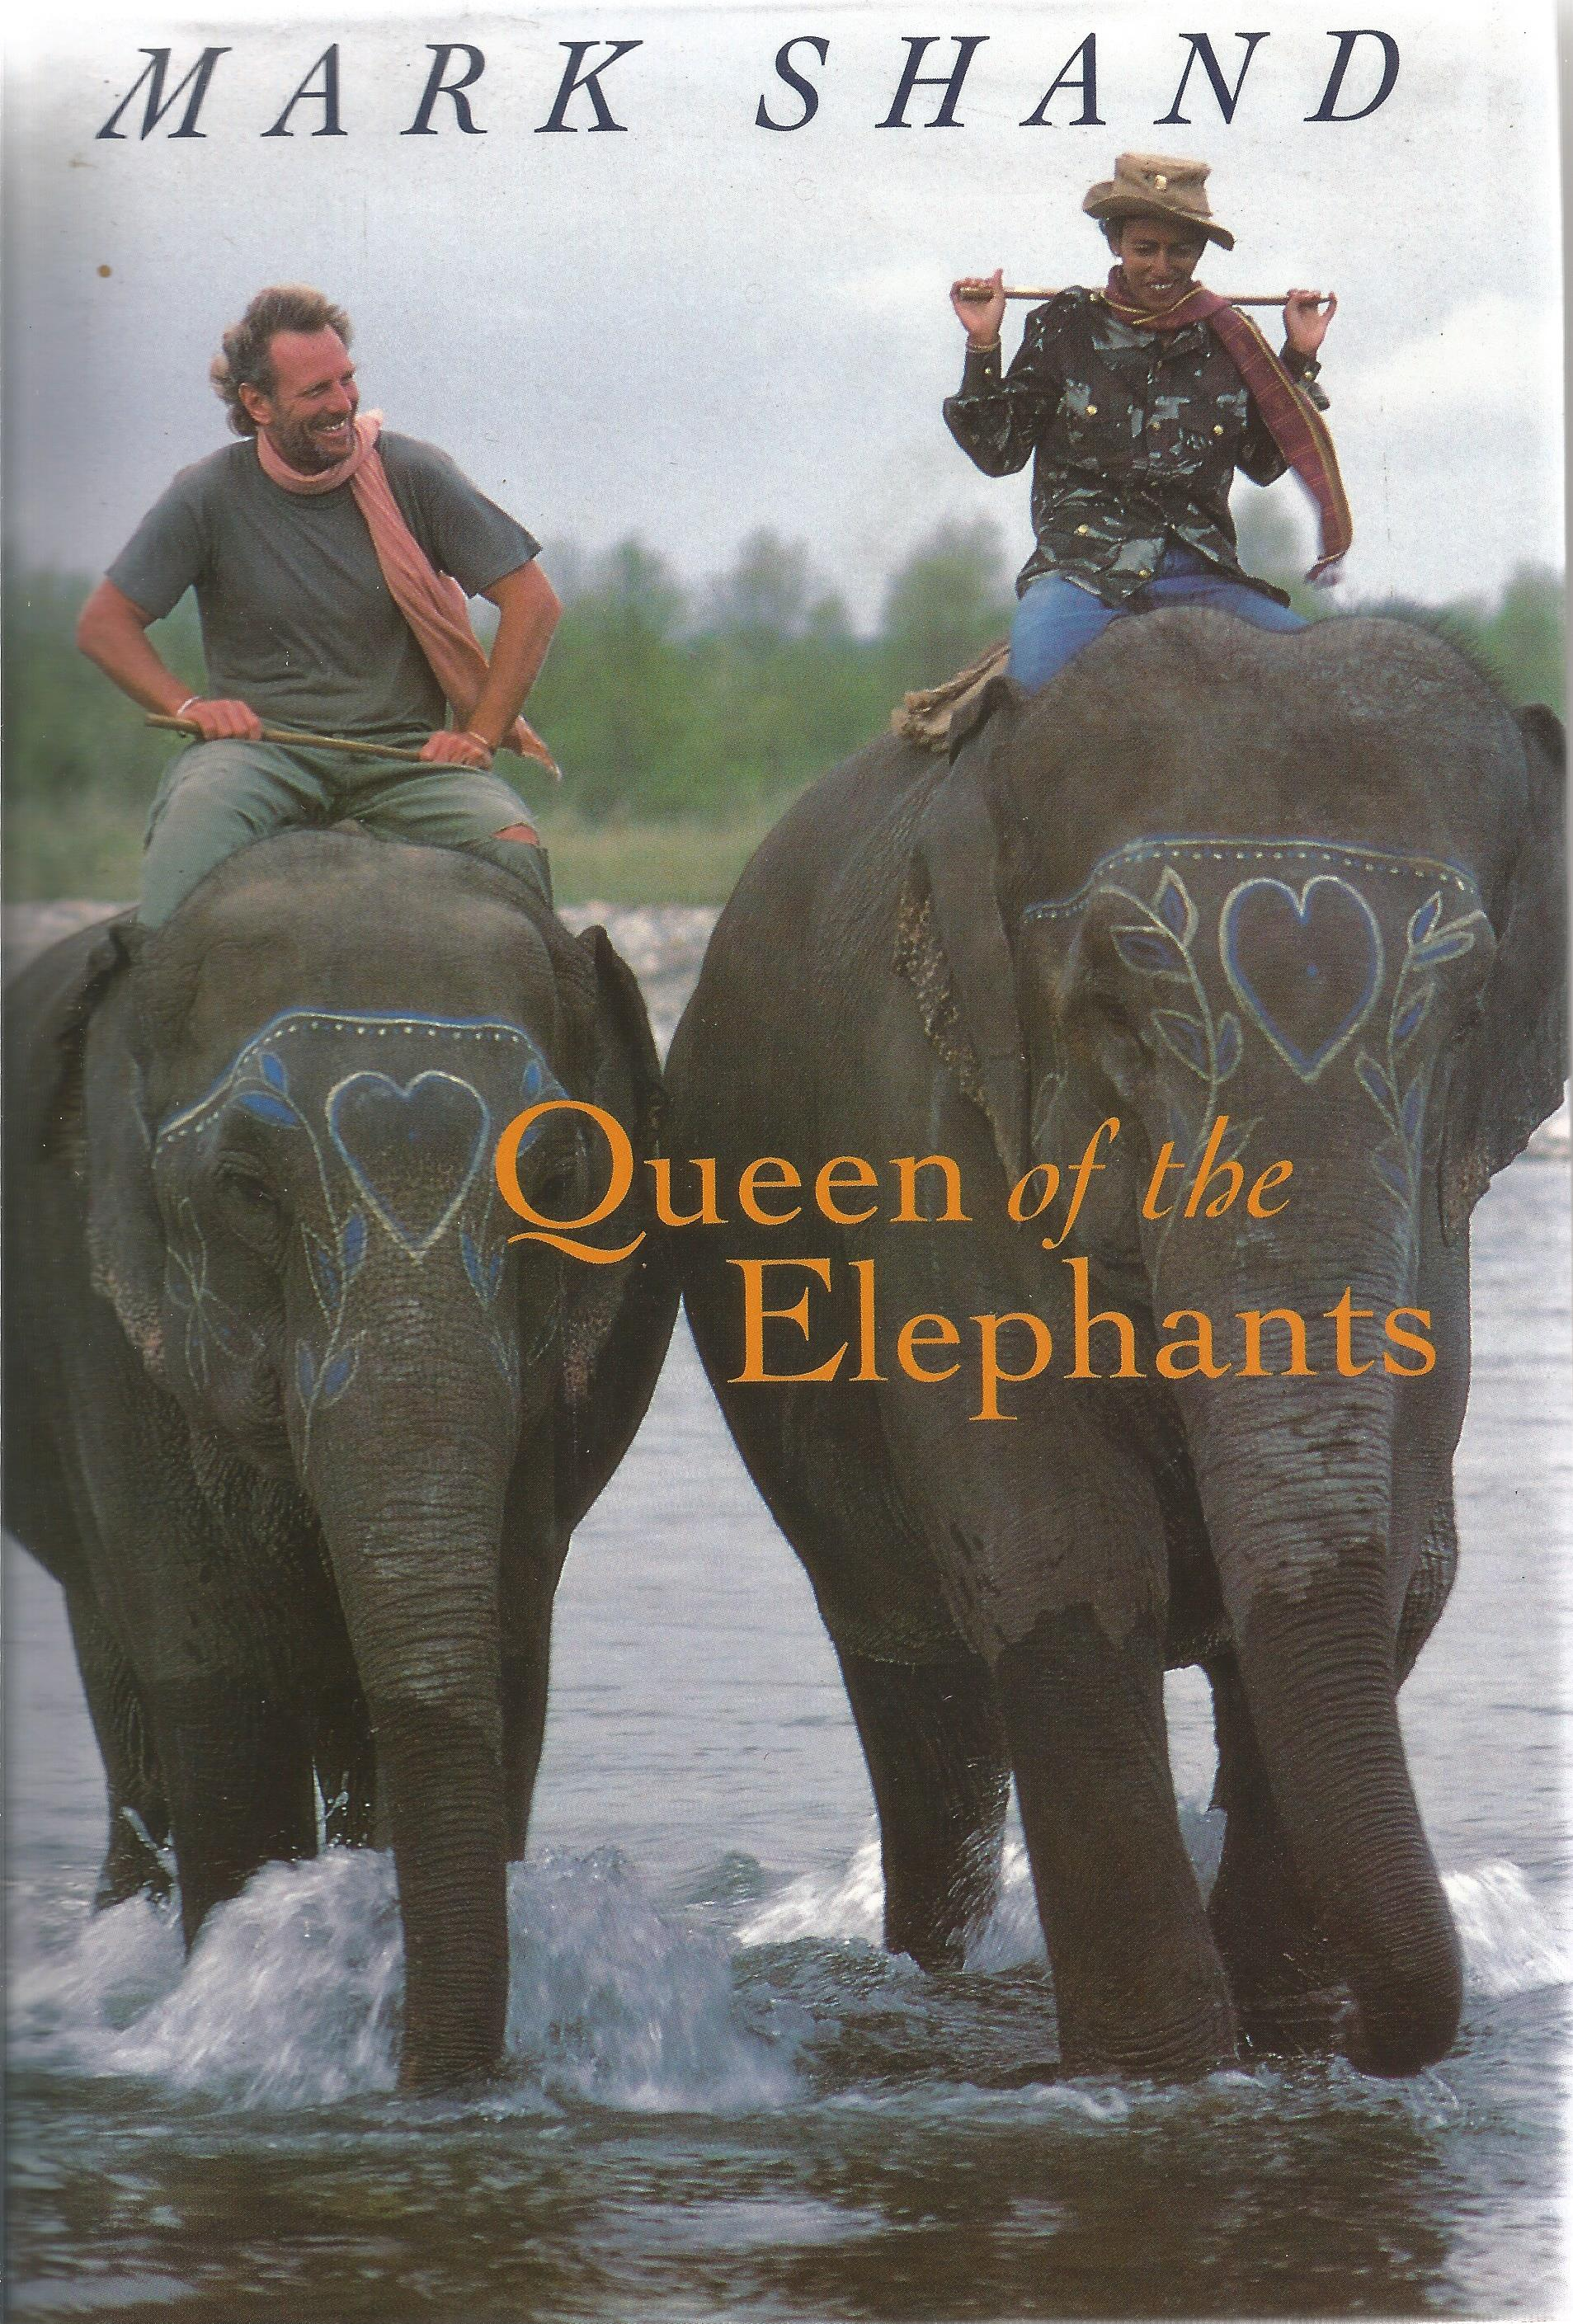 Mark Shand Hardback Book Queen of the Elephants signed by the Author on the Second Page For Diana